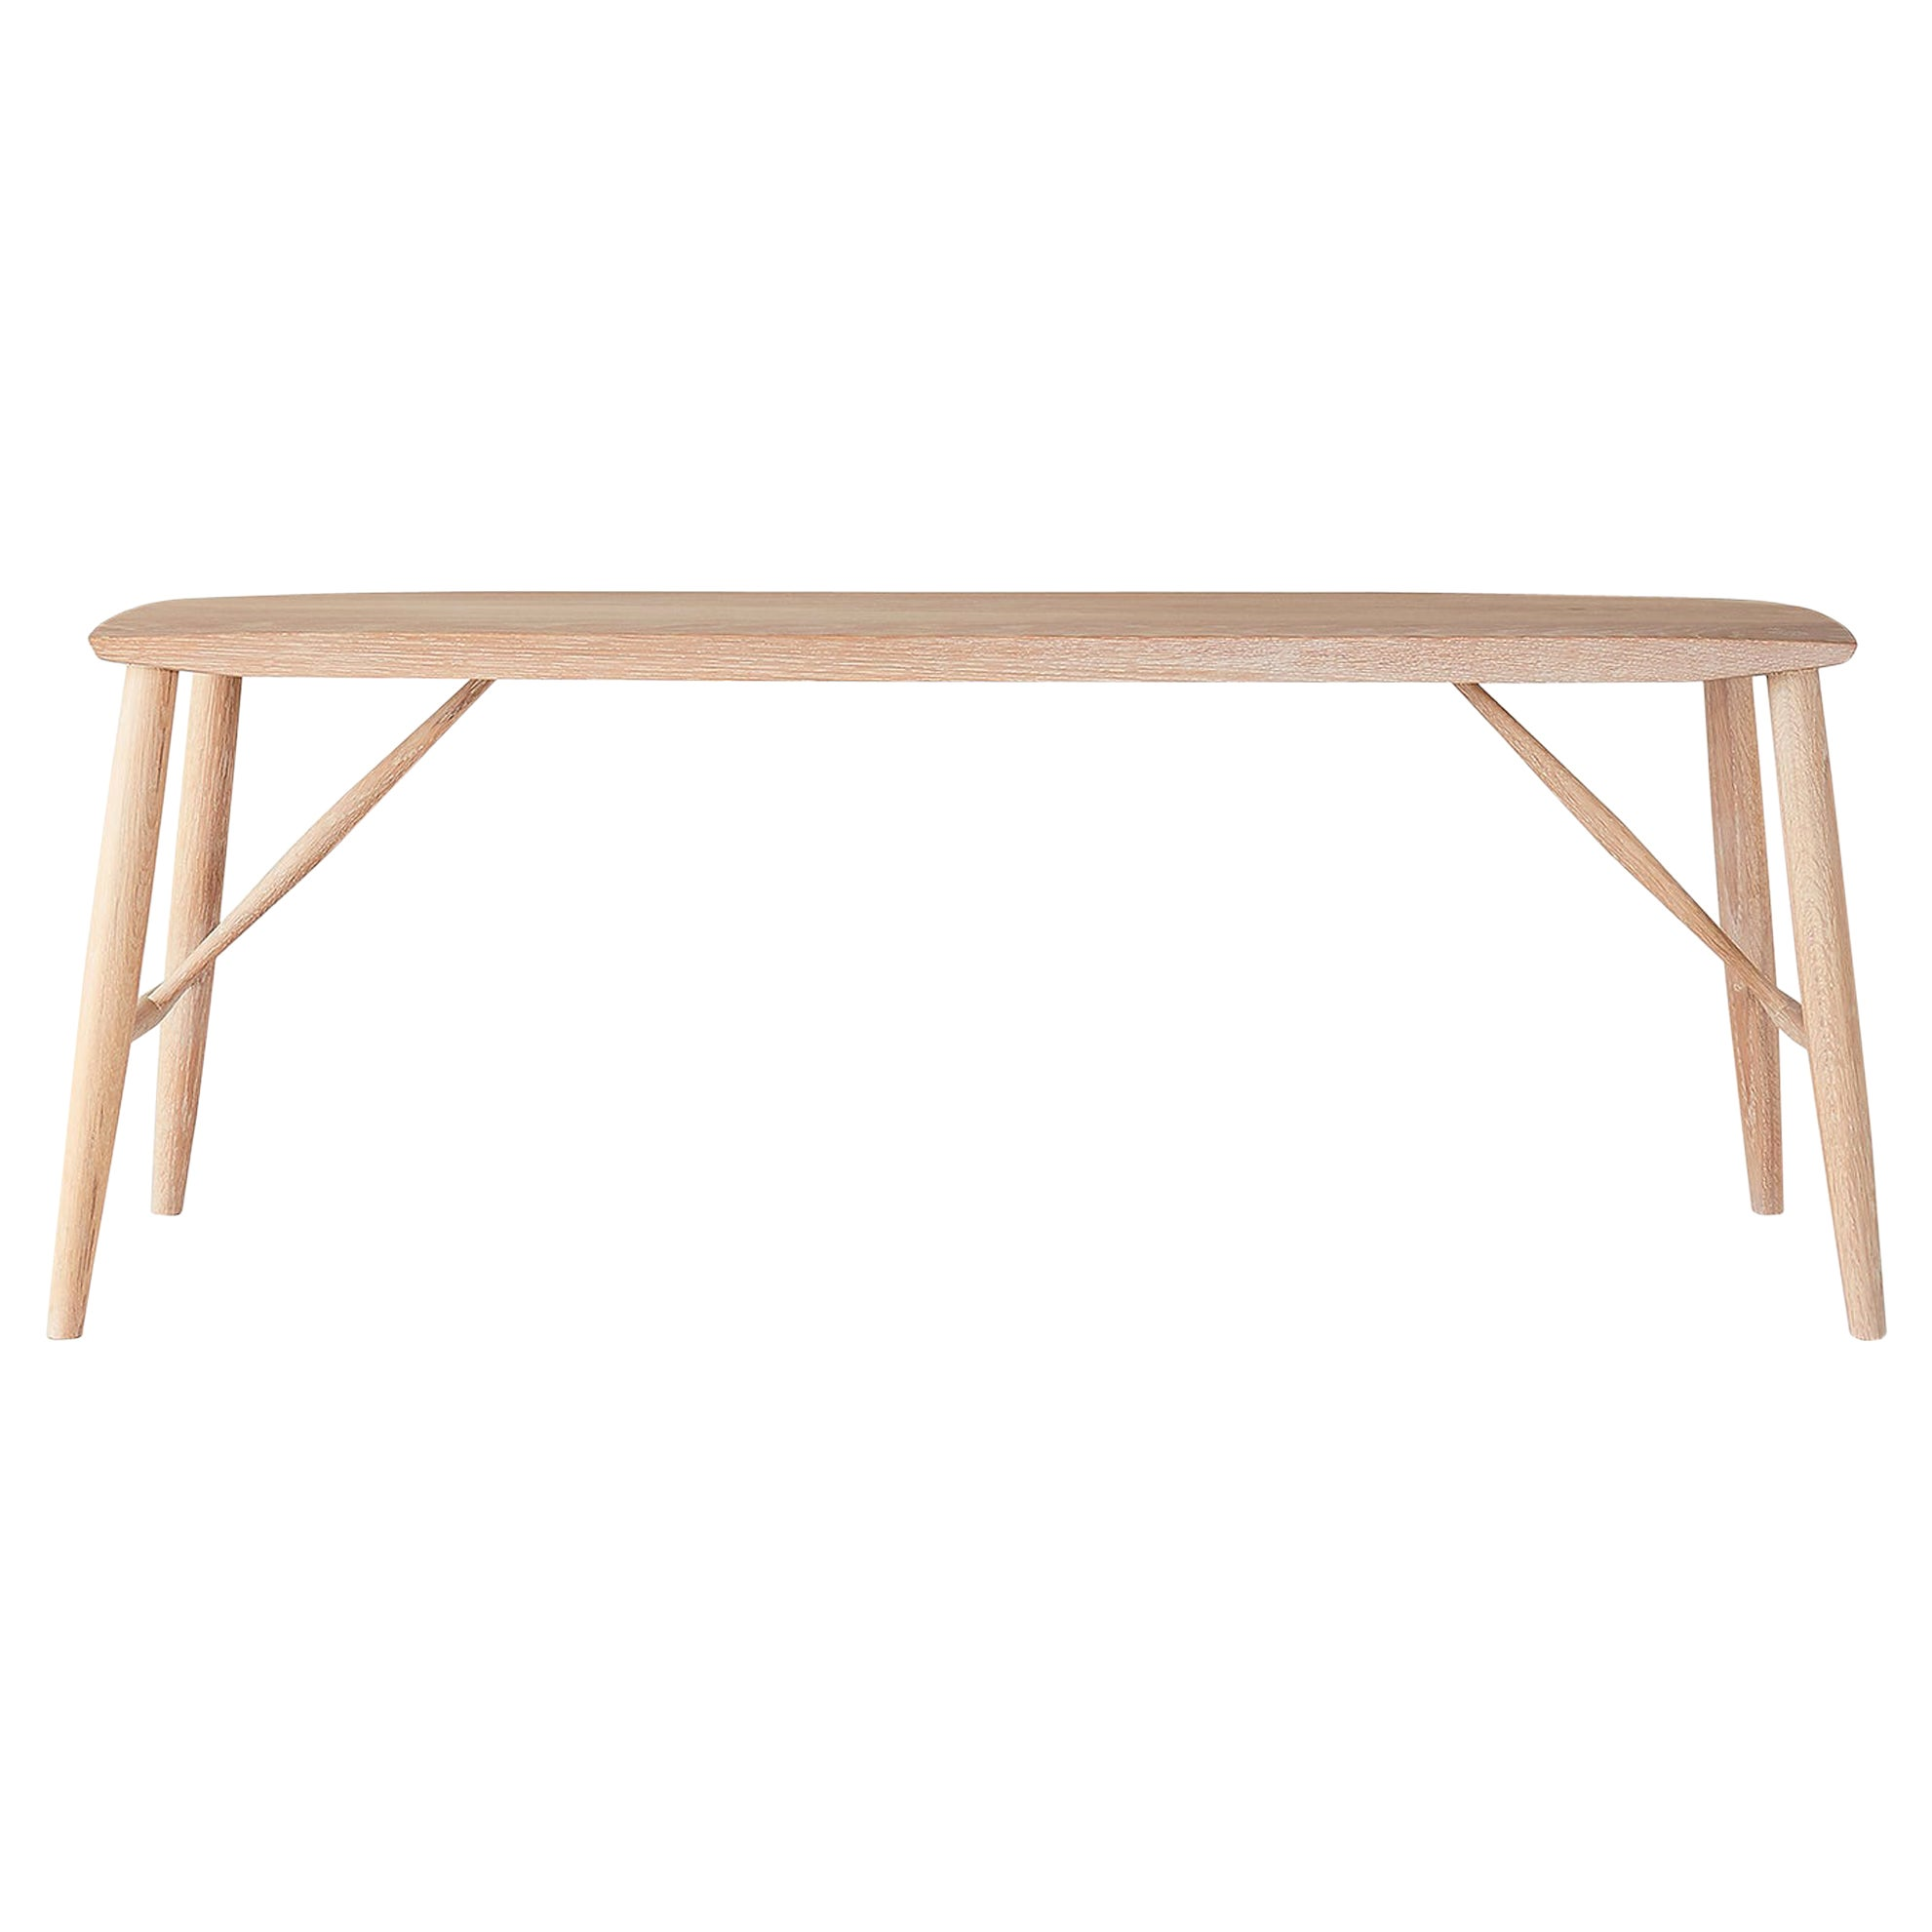 Minimal White Oak Bench by Coolican & Company